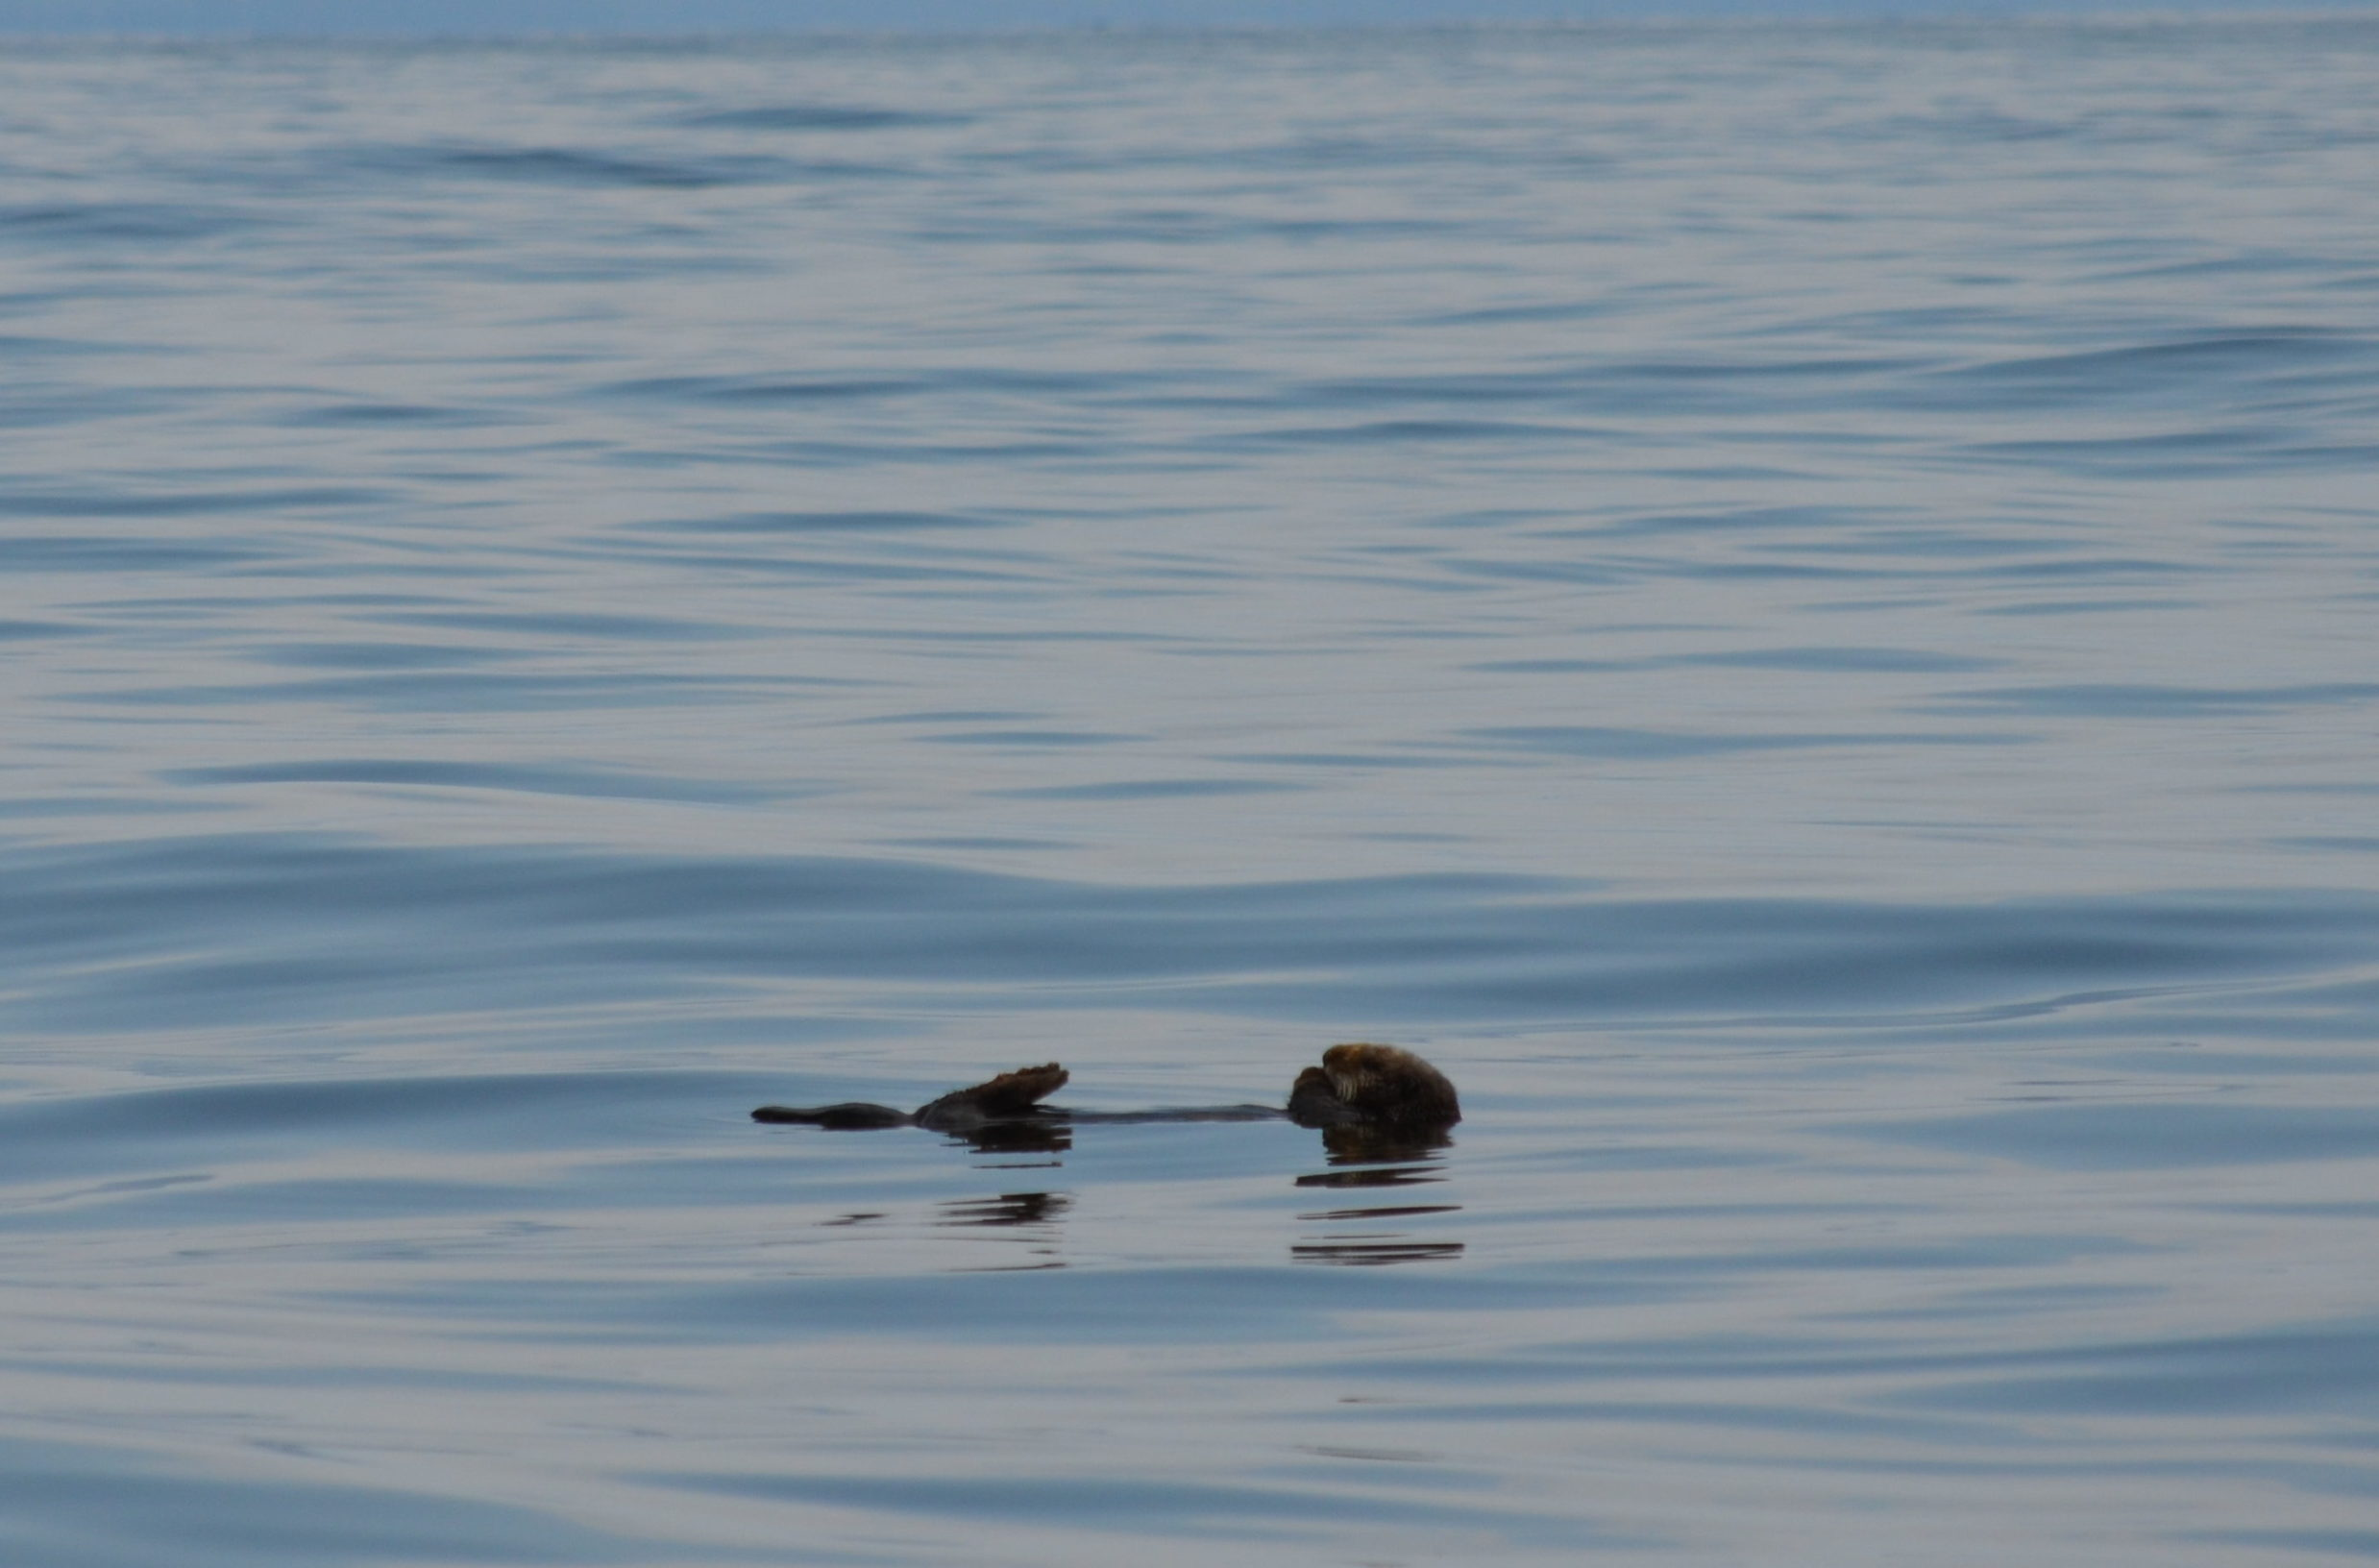 Sea otter lazing around